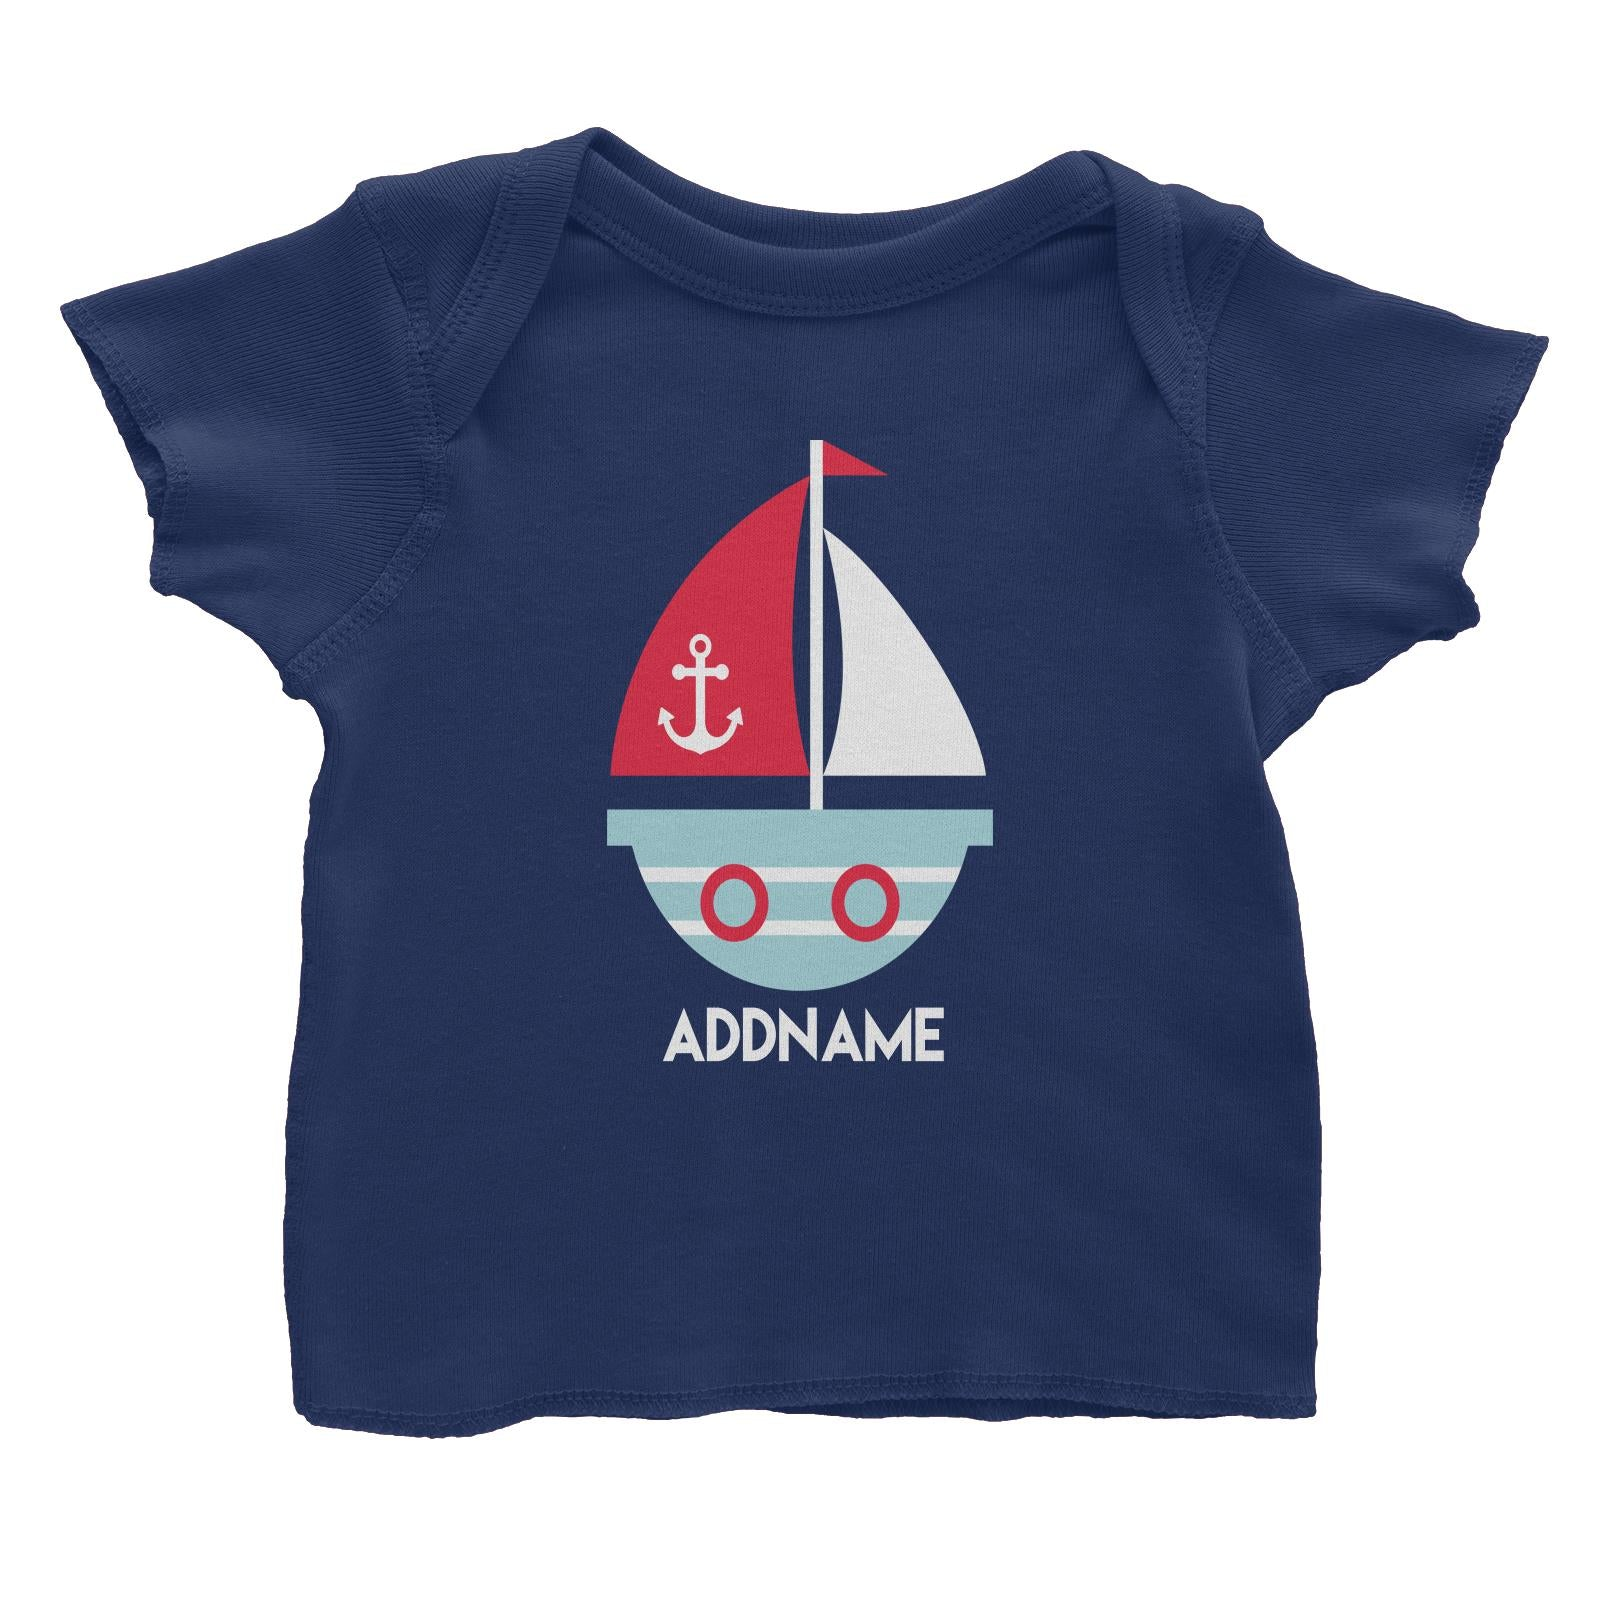 Sailor Boat Addname Baby T-Shirt  Matching Family Personalizable Designs